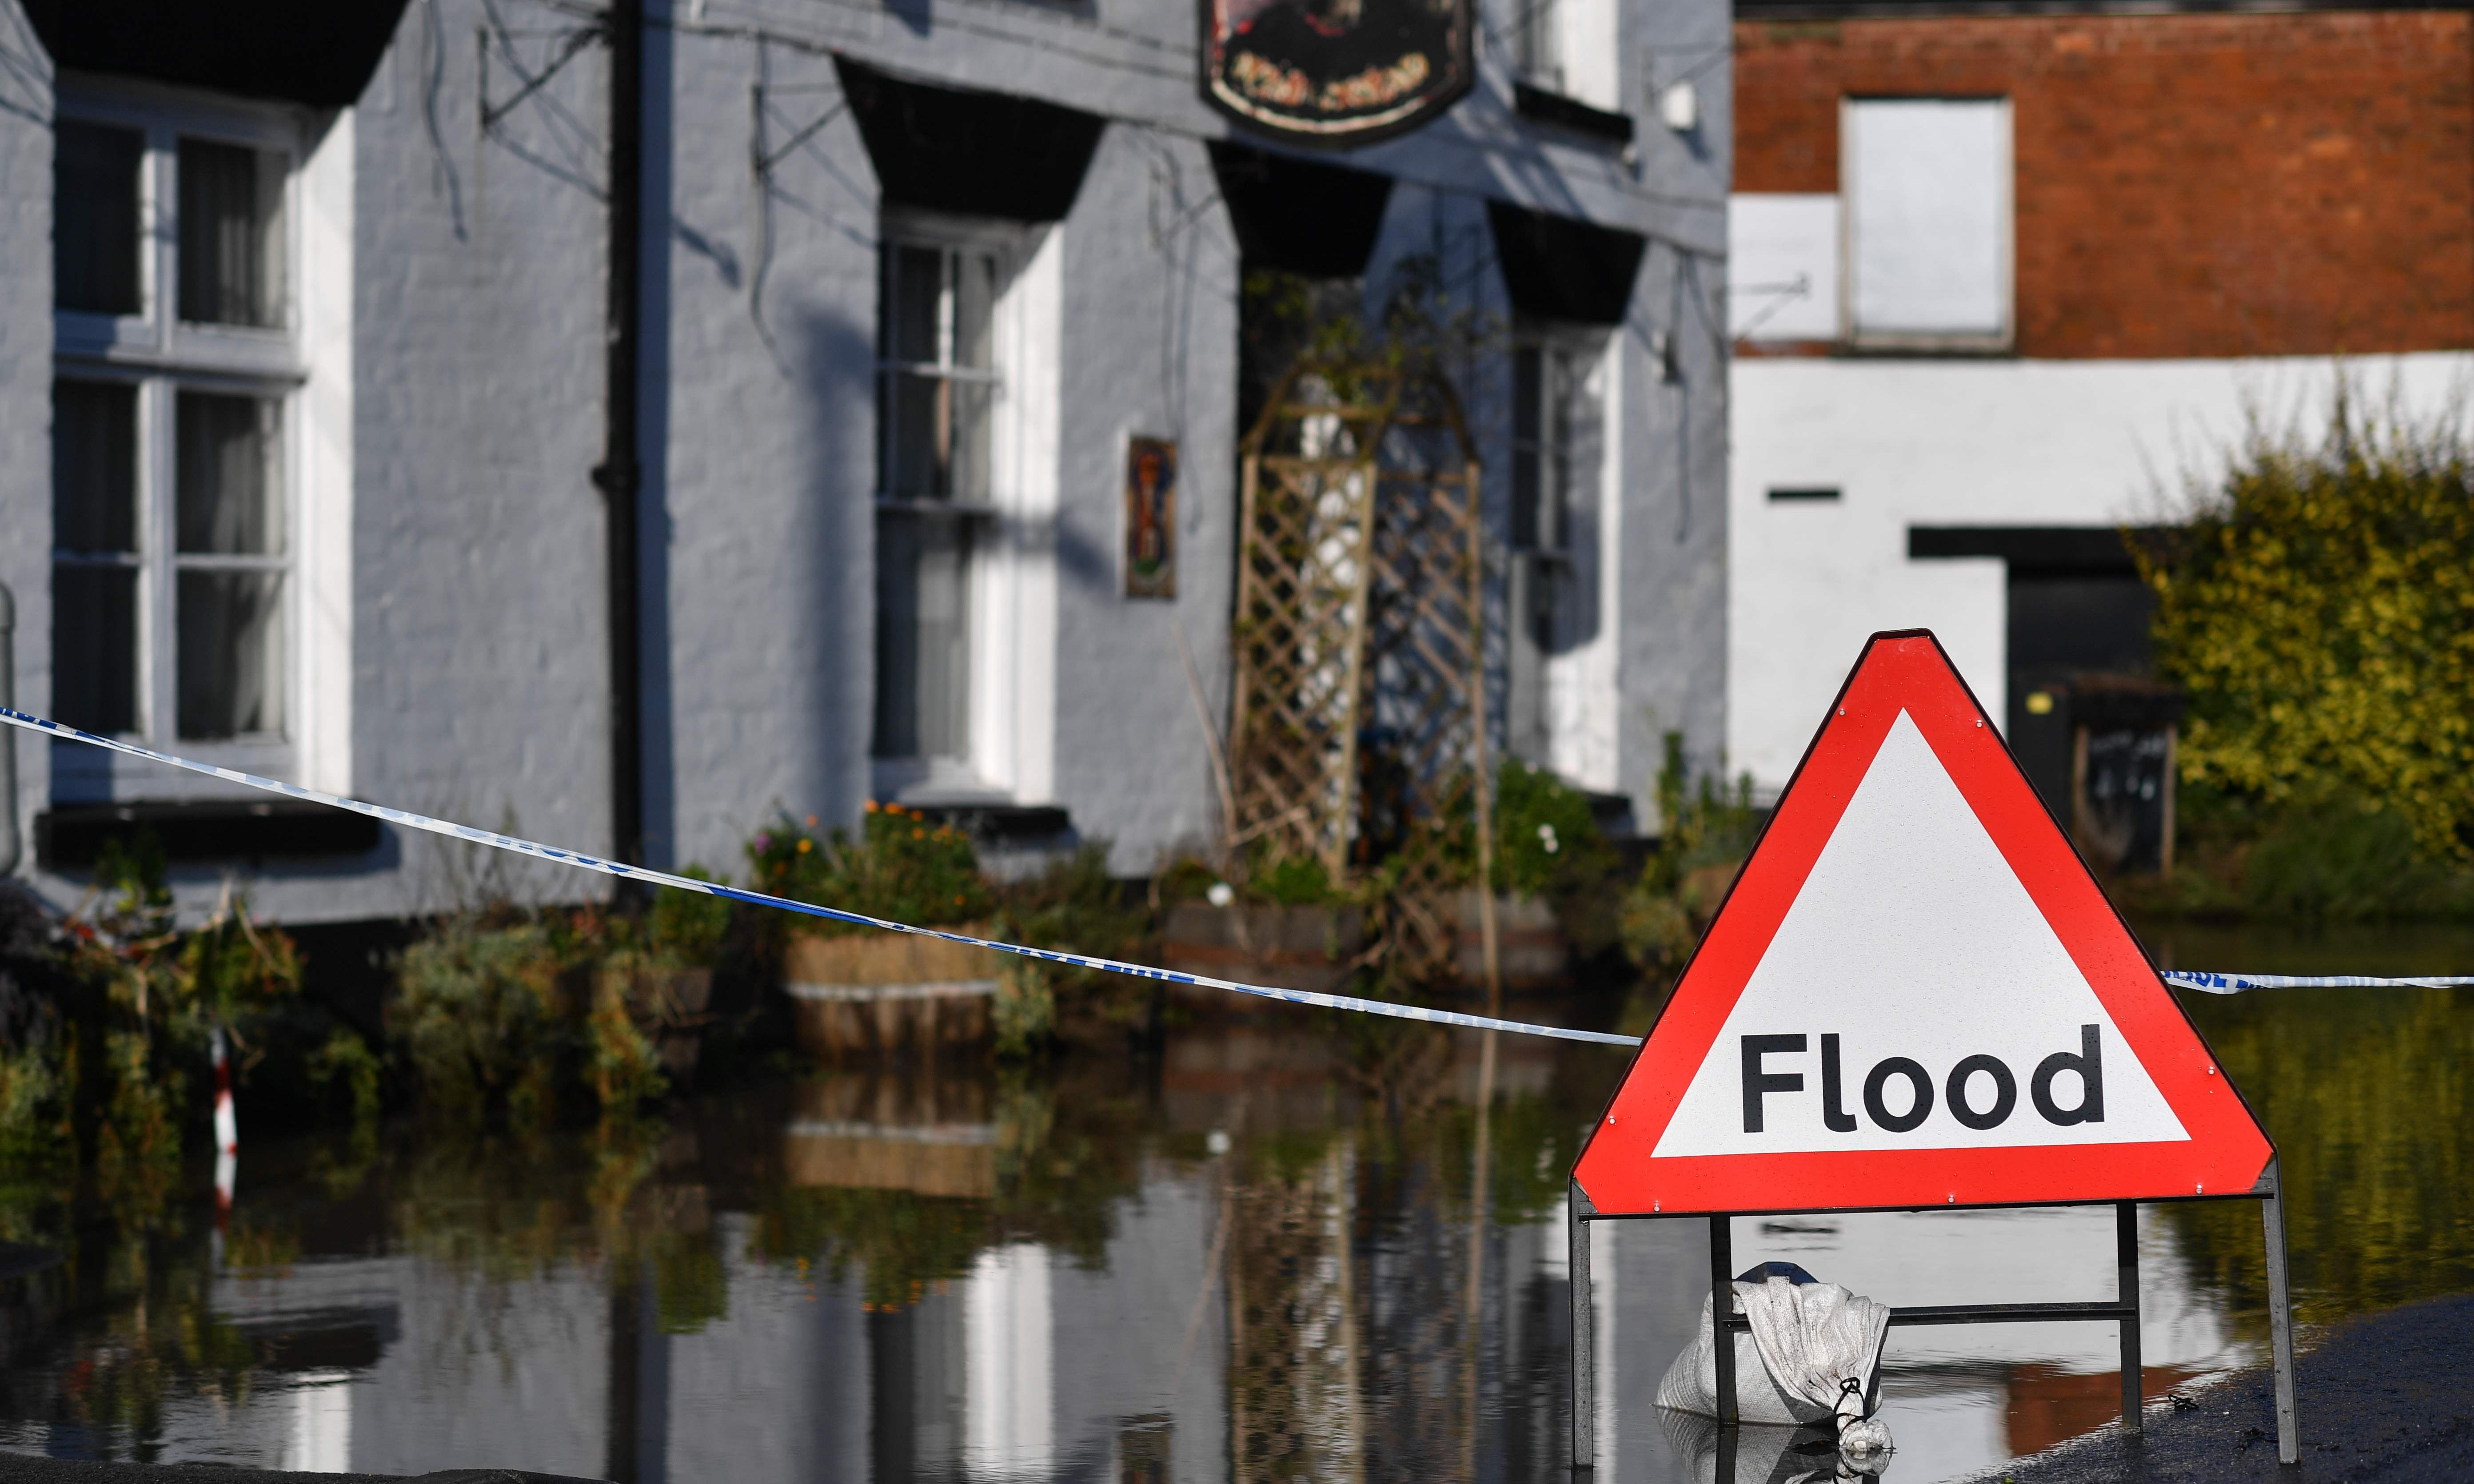 Flood risk from swollen rivers across England as more rain expected